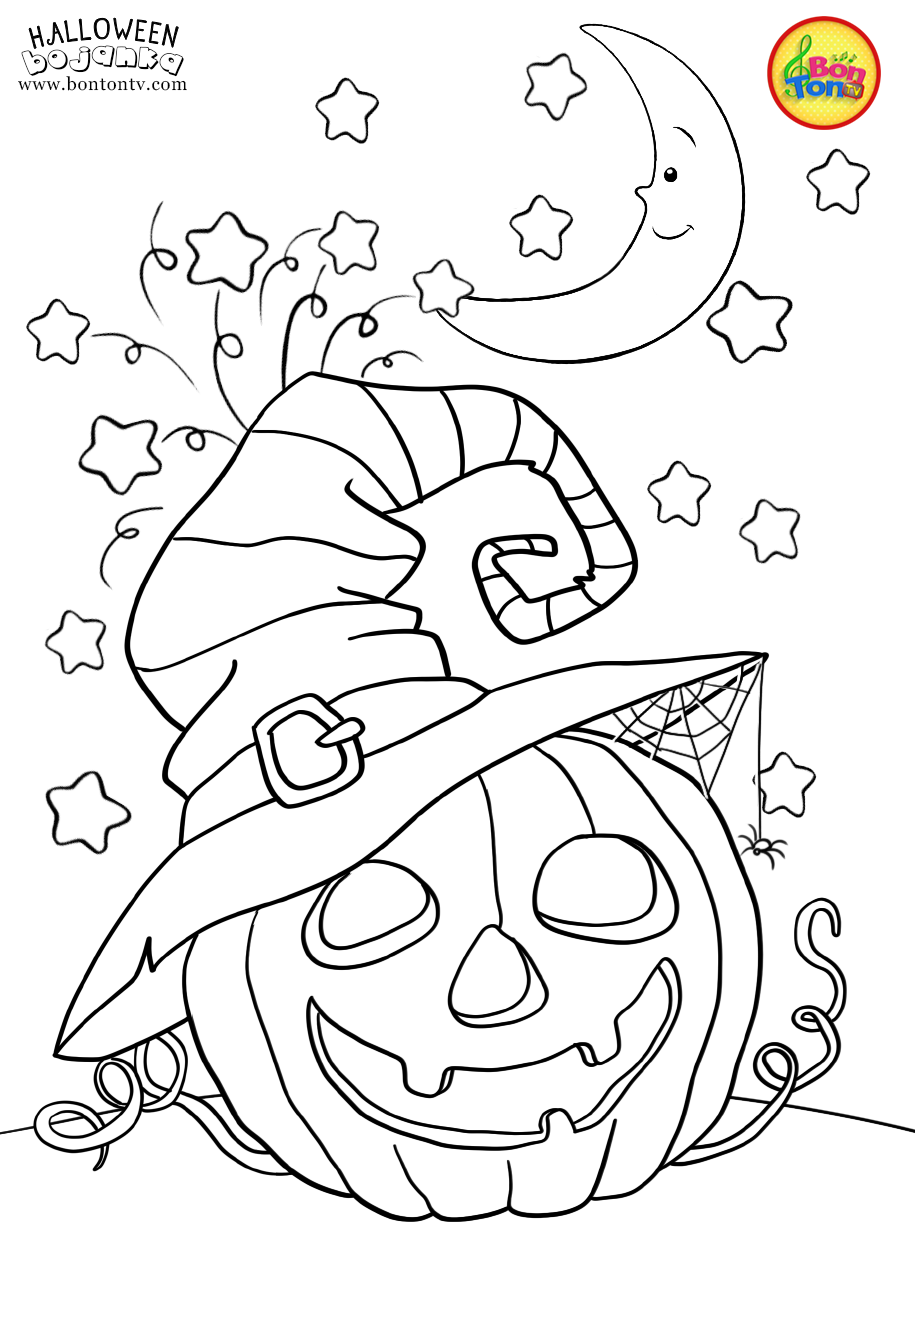 Halloween Coloring Pages For Kids - Free Preschool